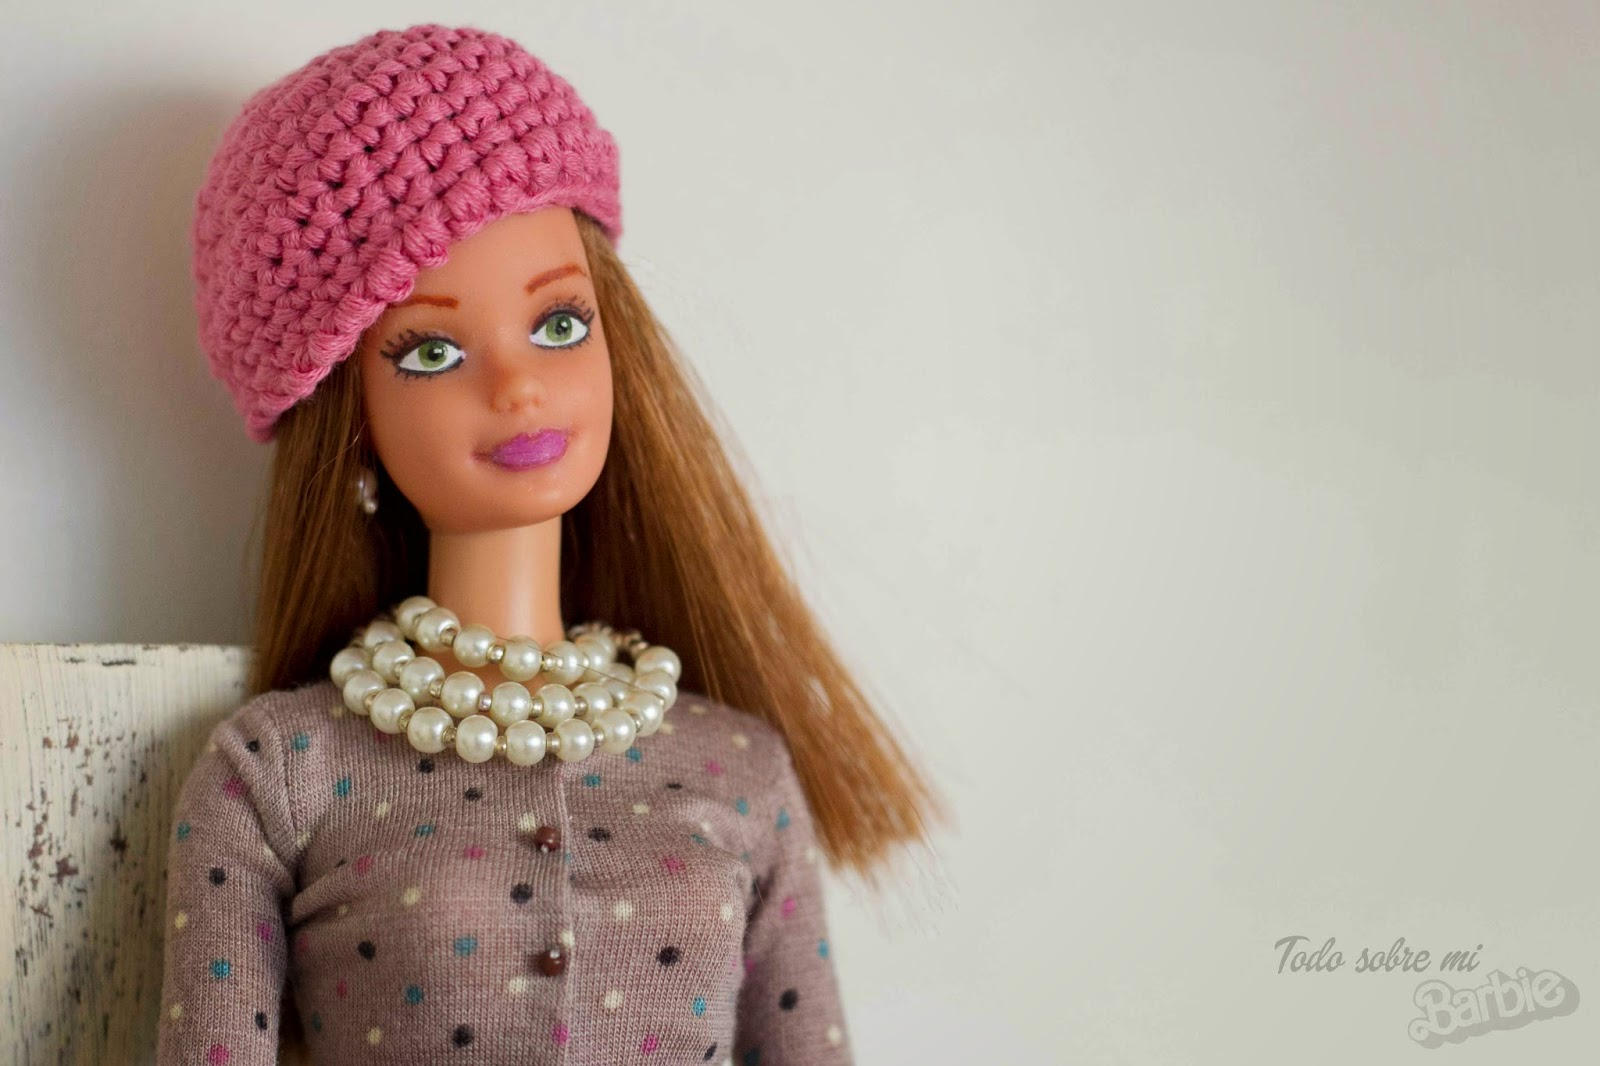 Todo sobre mi Barbie: Gorro de ganchillo, patrón para Barbie.